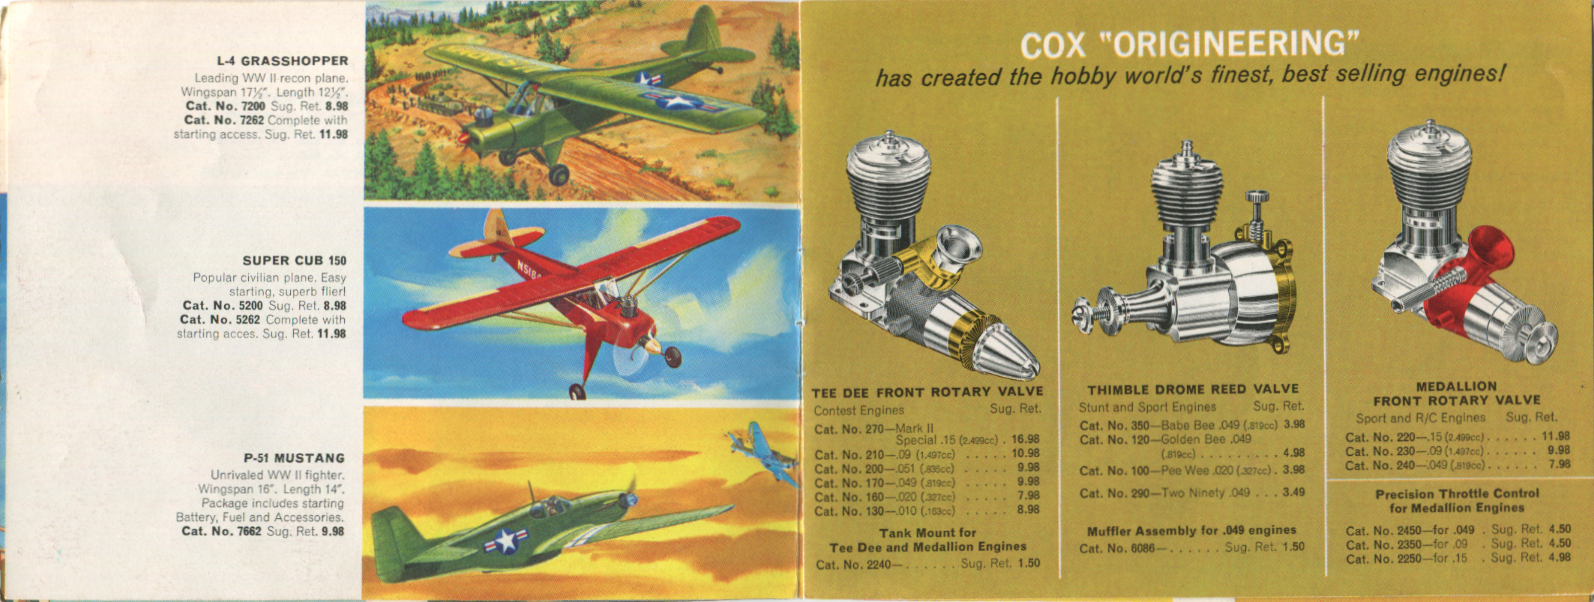 The Exciting World of Cox Hobbies - Fonts In Use